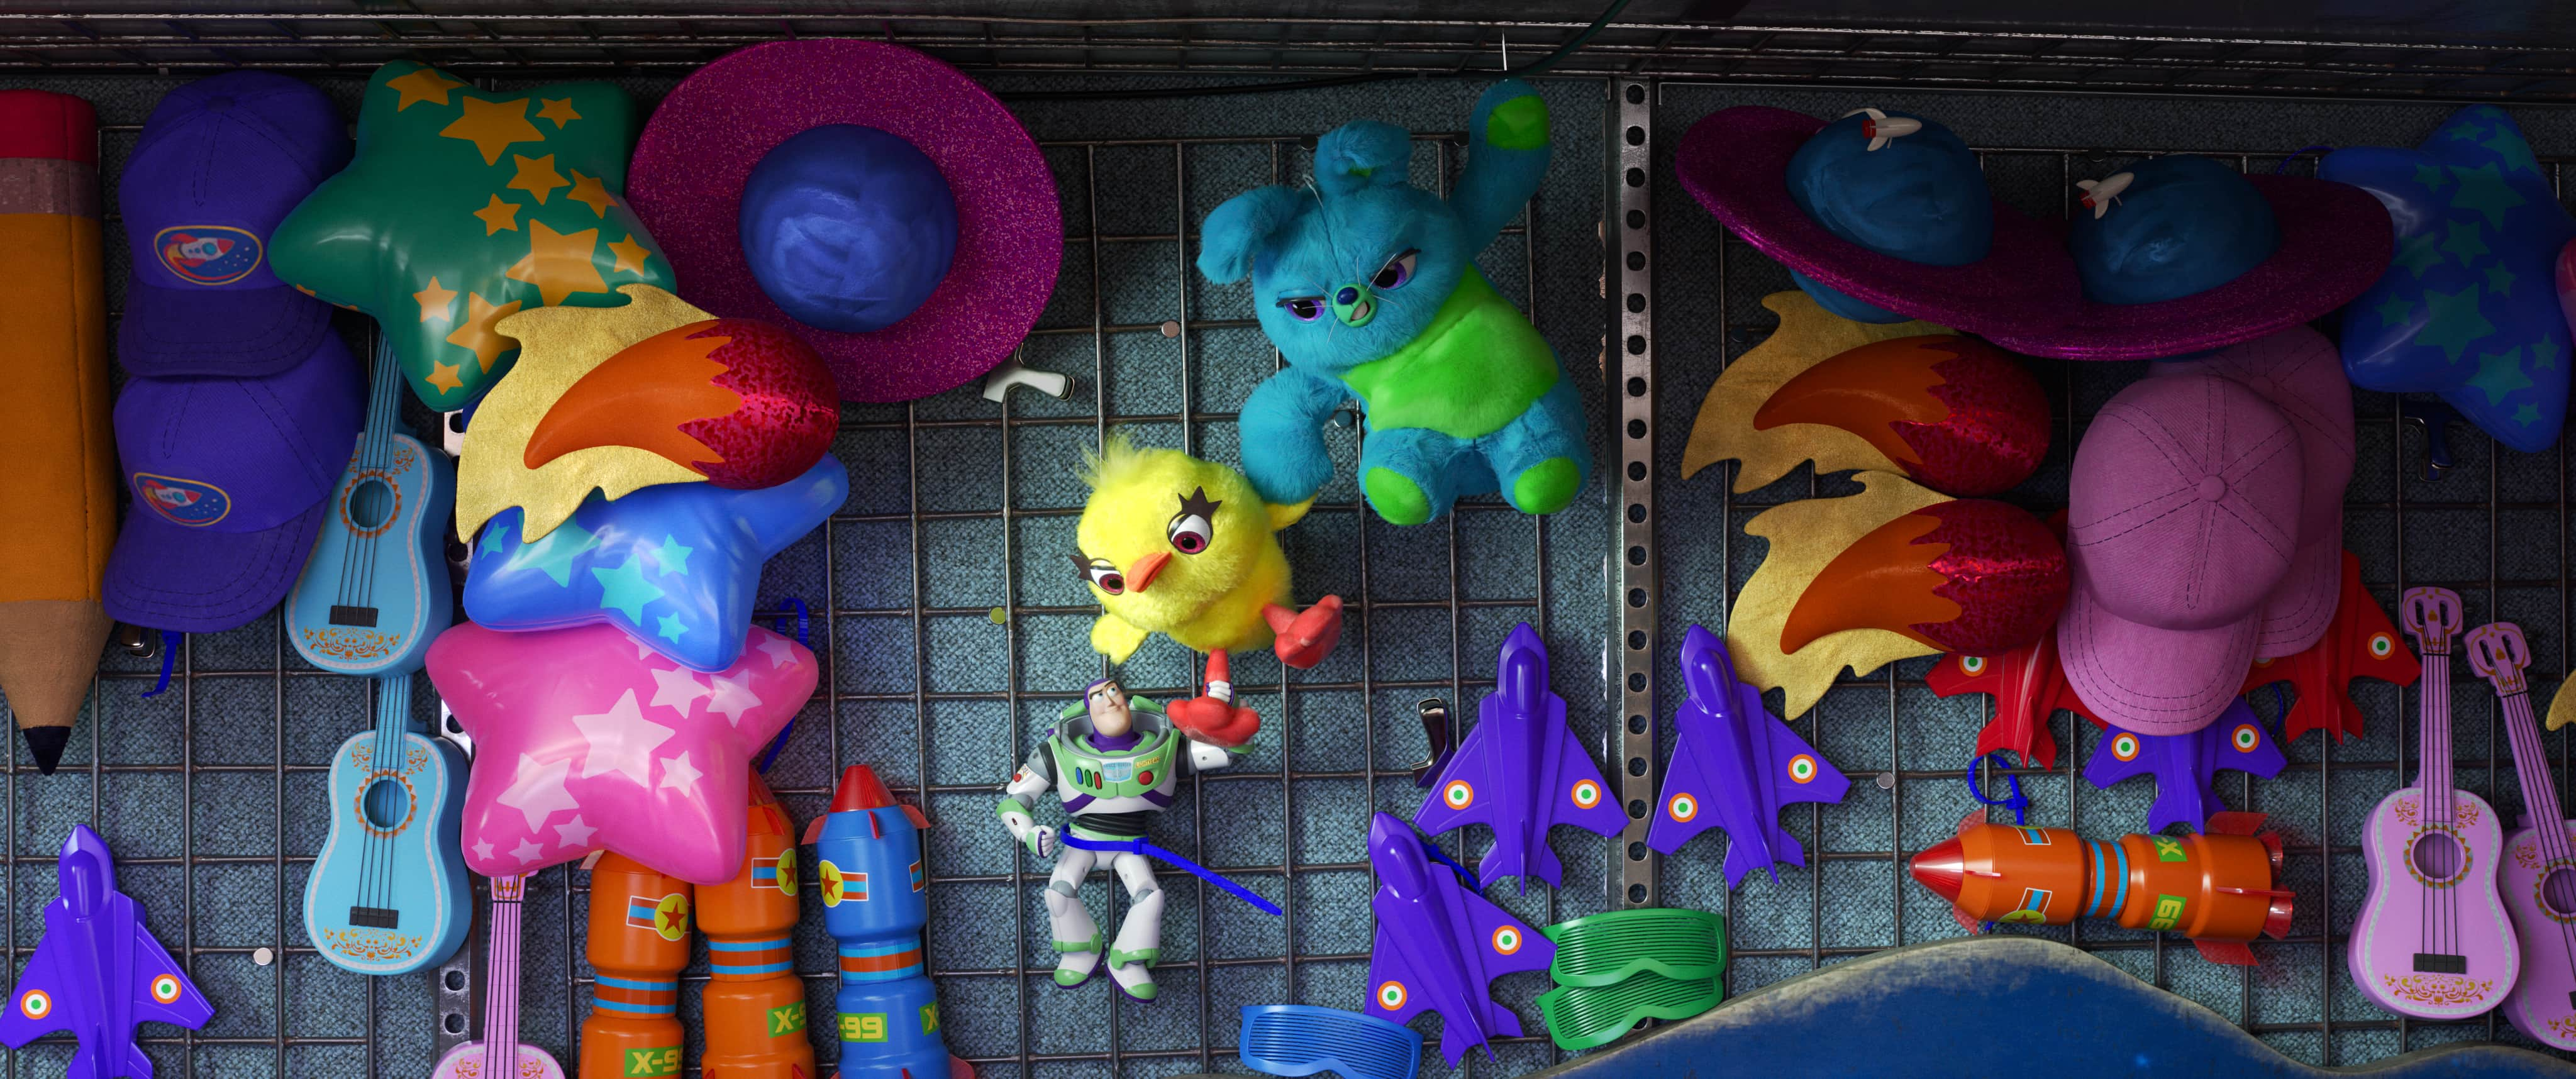 Toy Story 4 Trailer, Toy Story 4 Easter Eggs